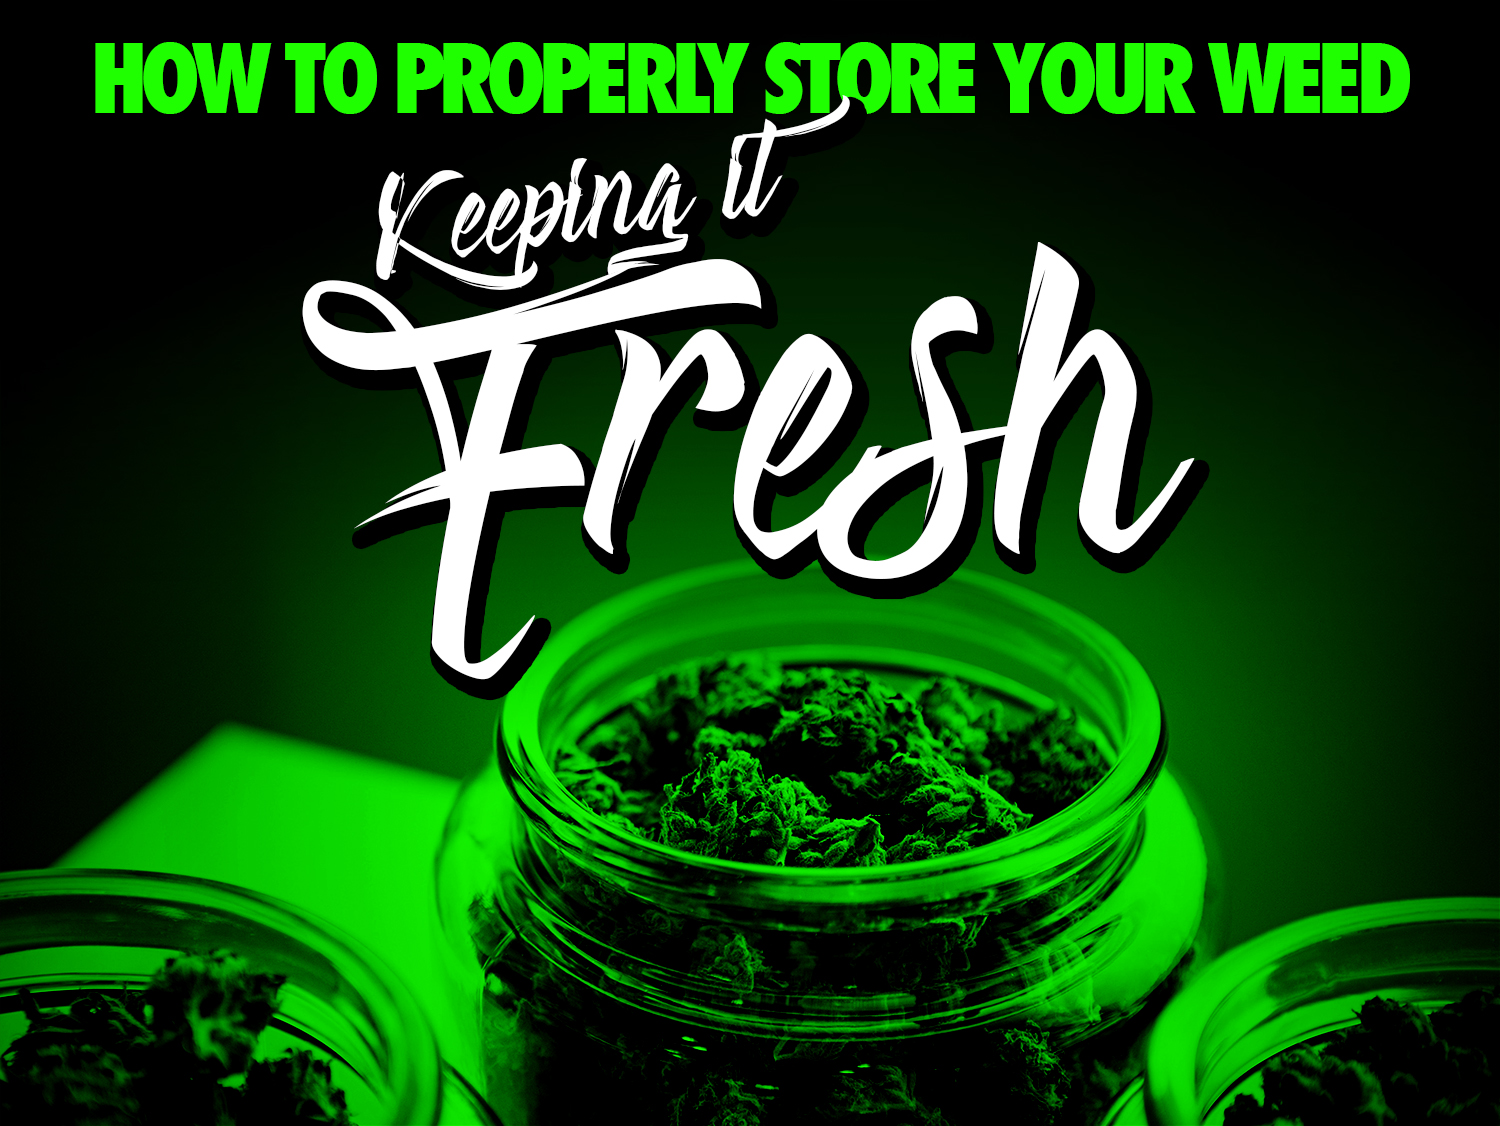 How To Properly Store Weed And Keep It Fresh